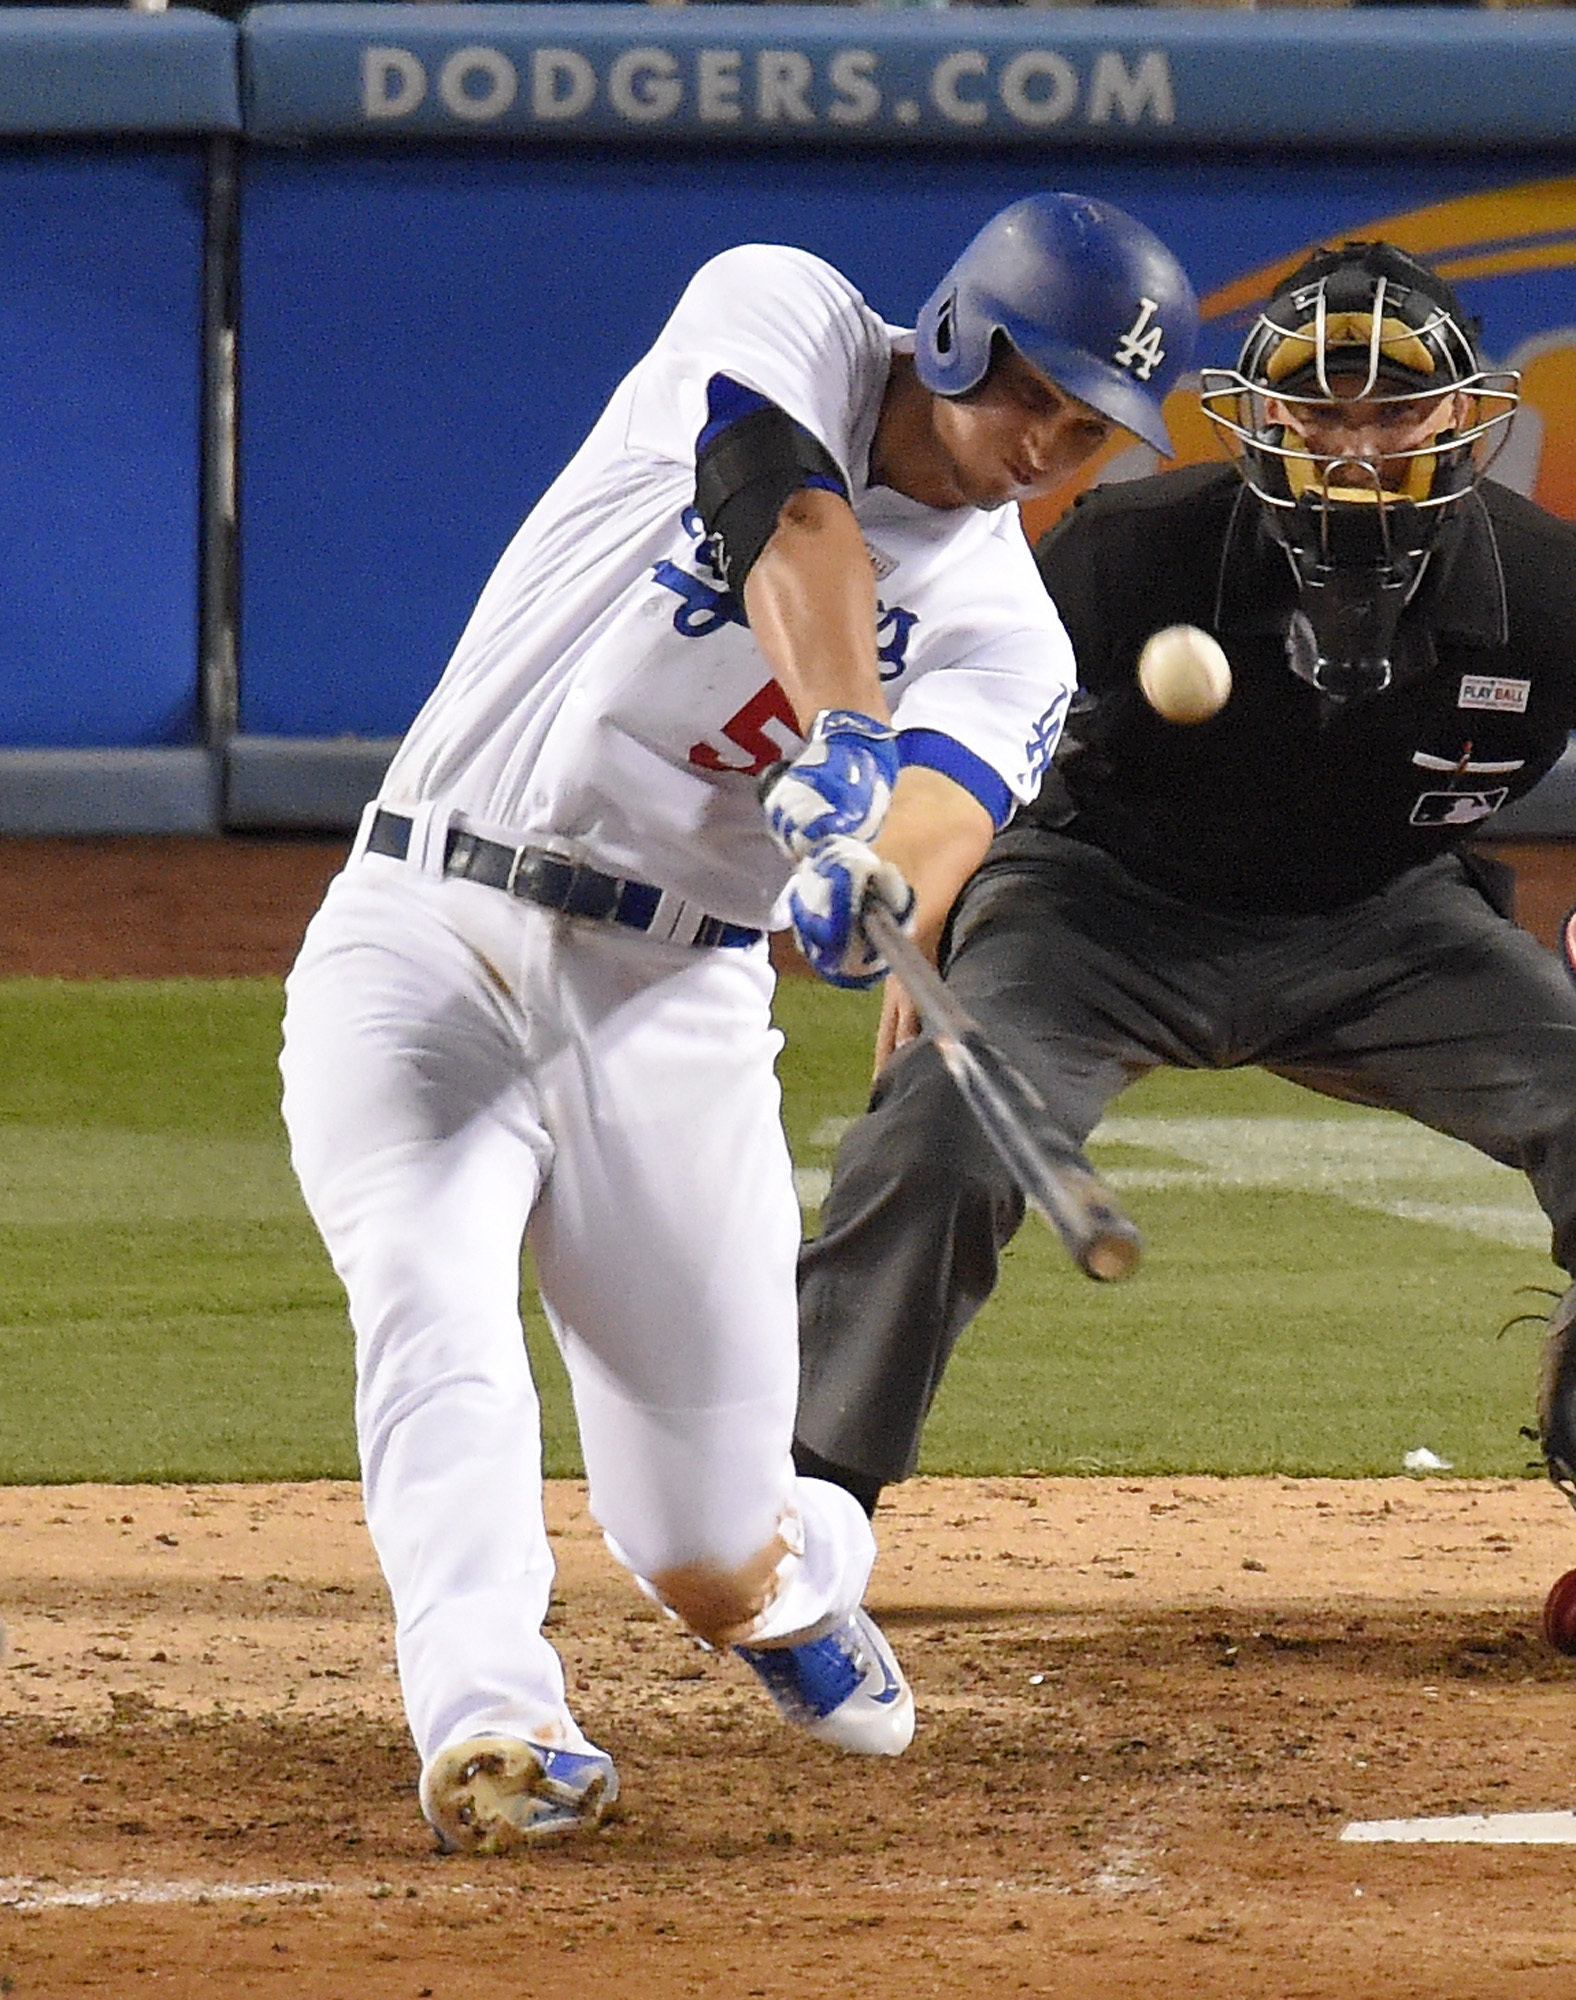 Los Angeles Dodgers' Corey Seager hits a solo home run as home plate umpire Adam Hamari watches during the seventh inning of a baseball game against the St. Louis Cardinals, Saturday, May 14, 2016, in Los Angeles. (AP Photo/Mark J. Terrill)